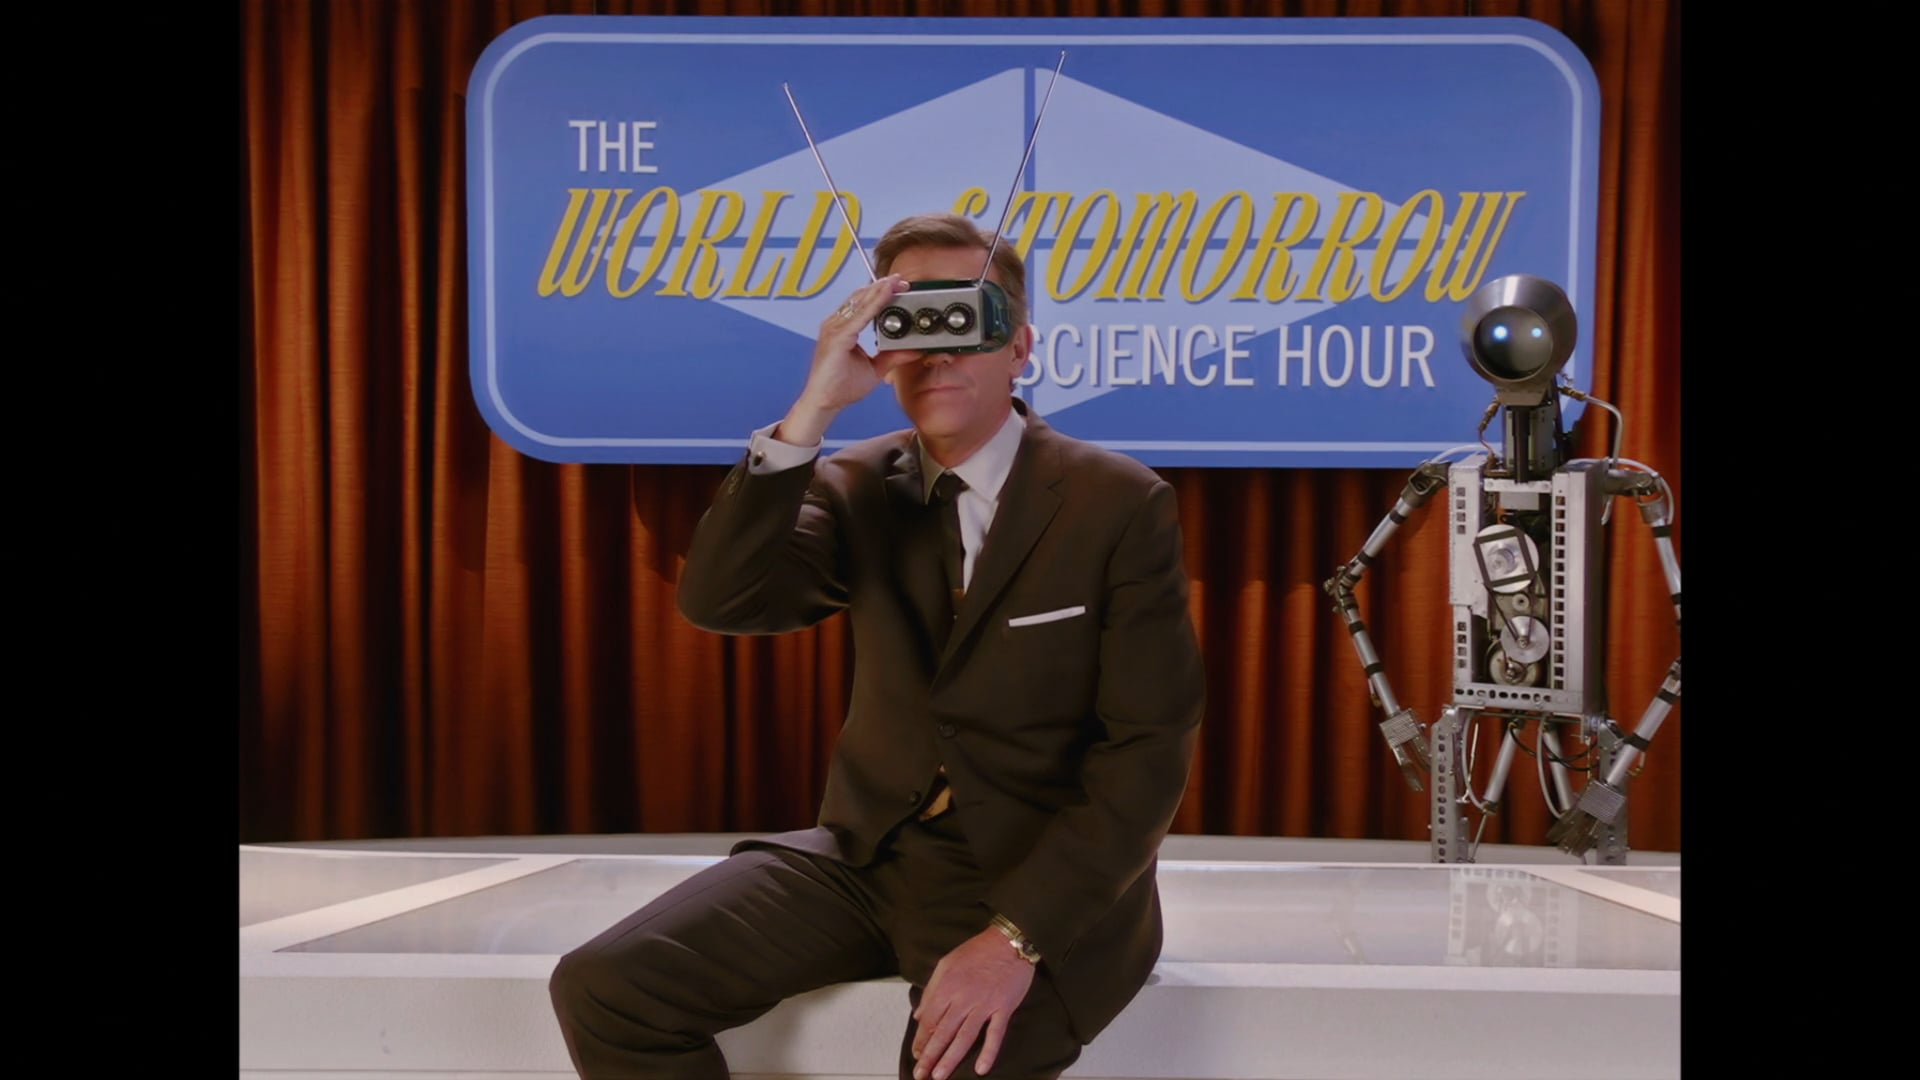 The World of Tomorrow Science Hour